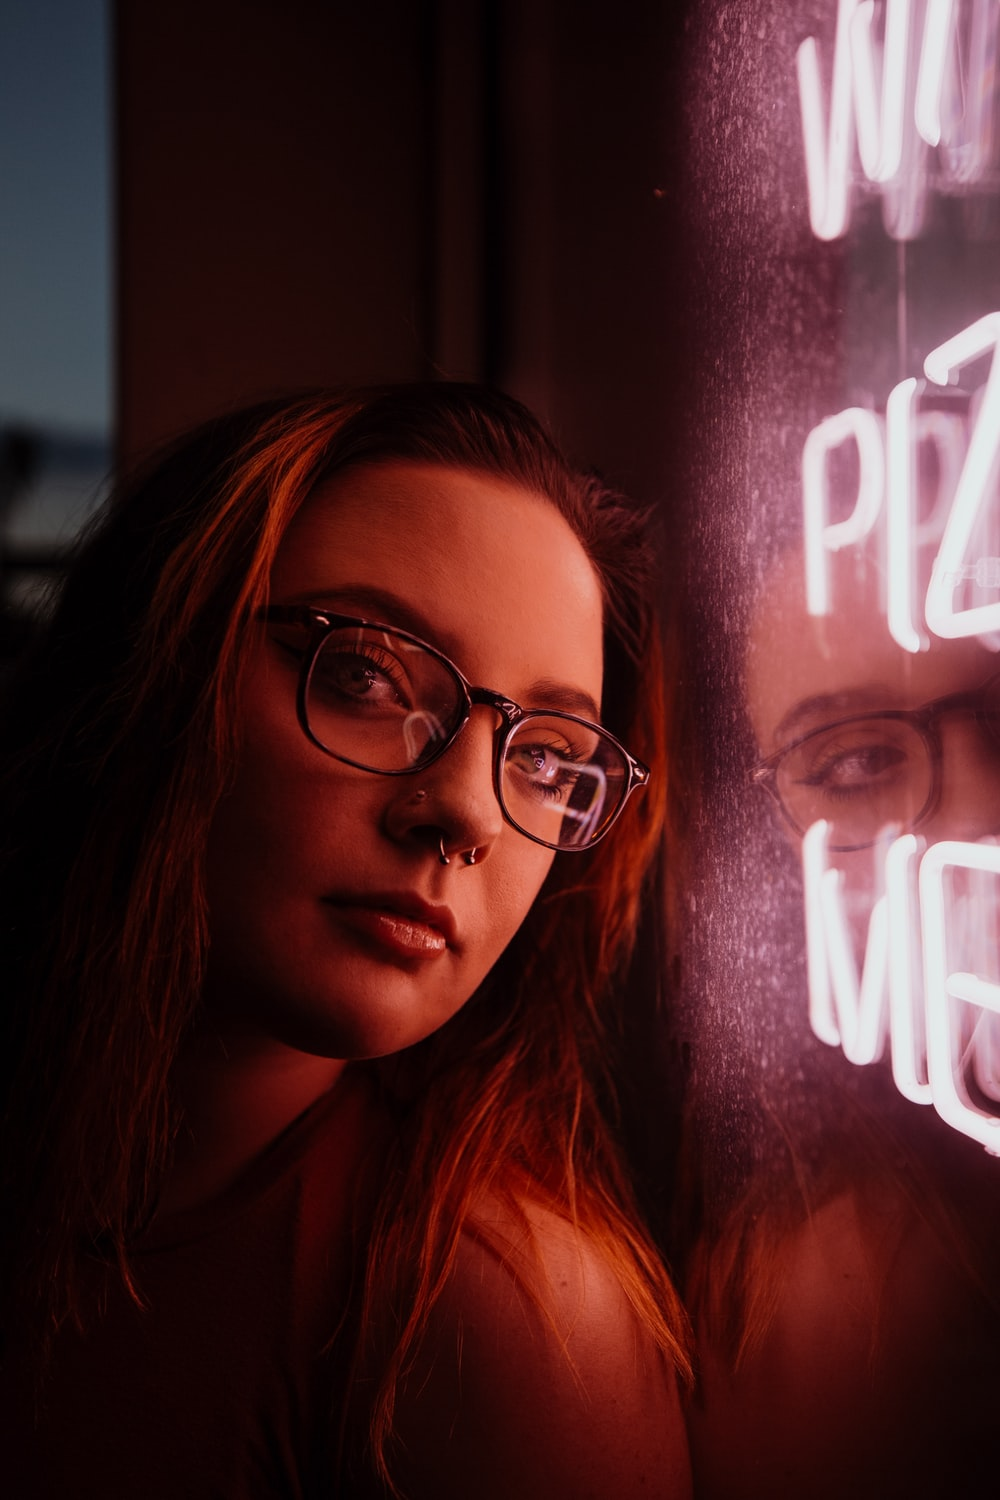 woman near NEON signage